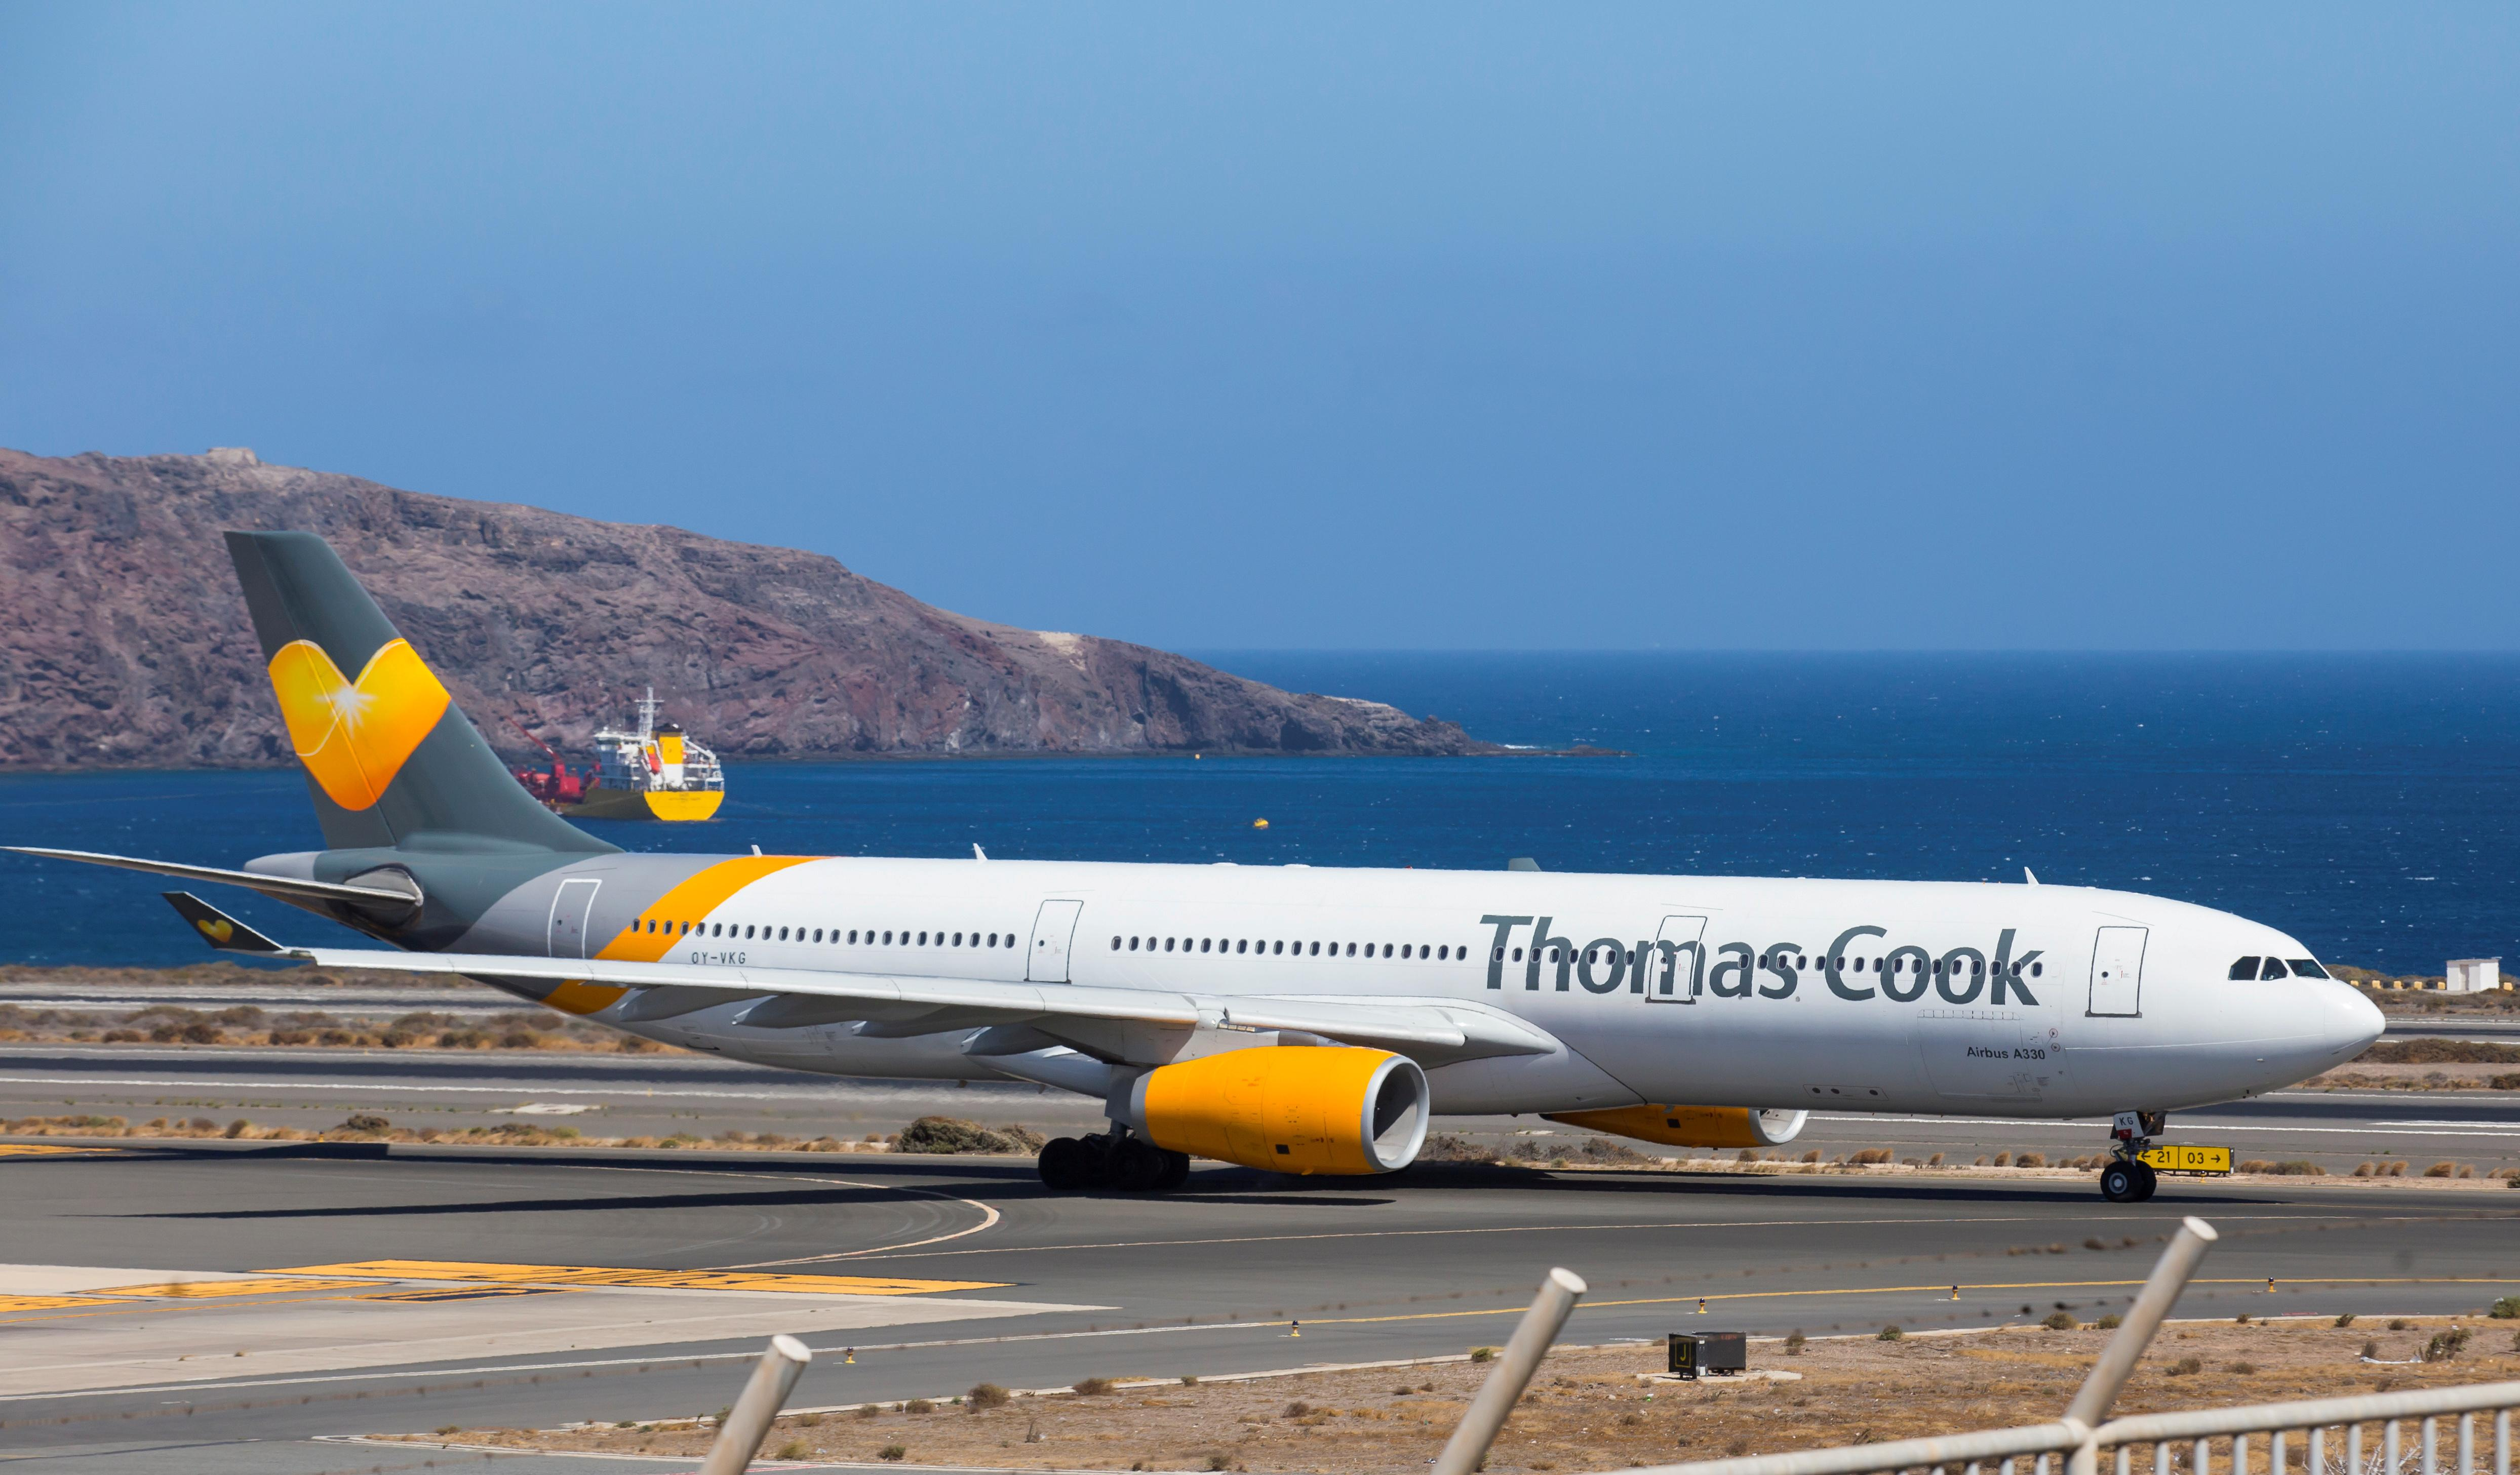 Travel firm Thomas Cook gets non-binding offer for Nordic operations